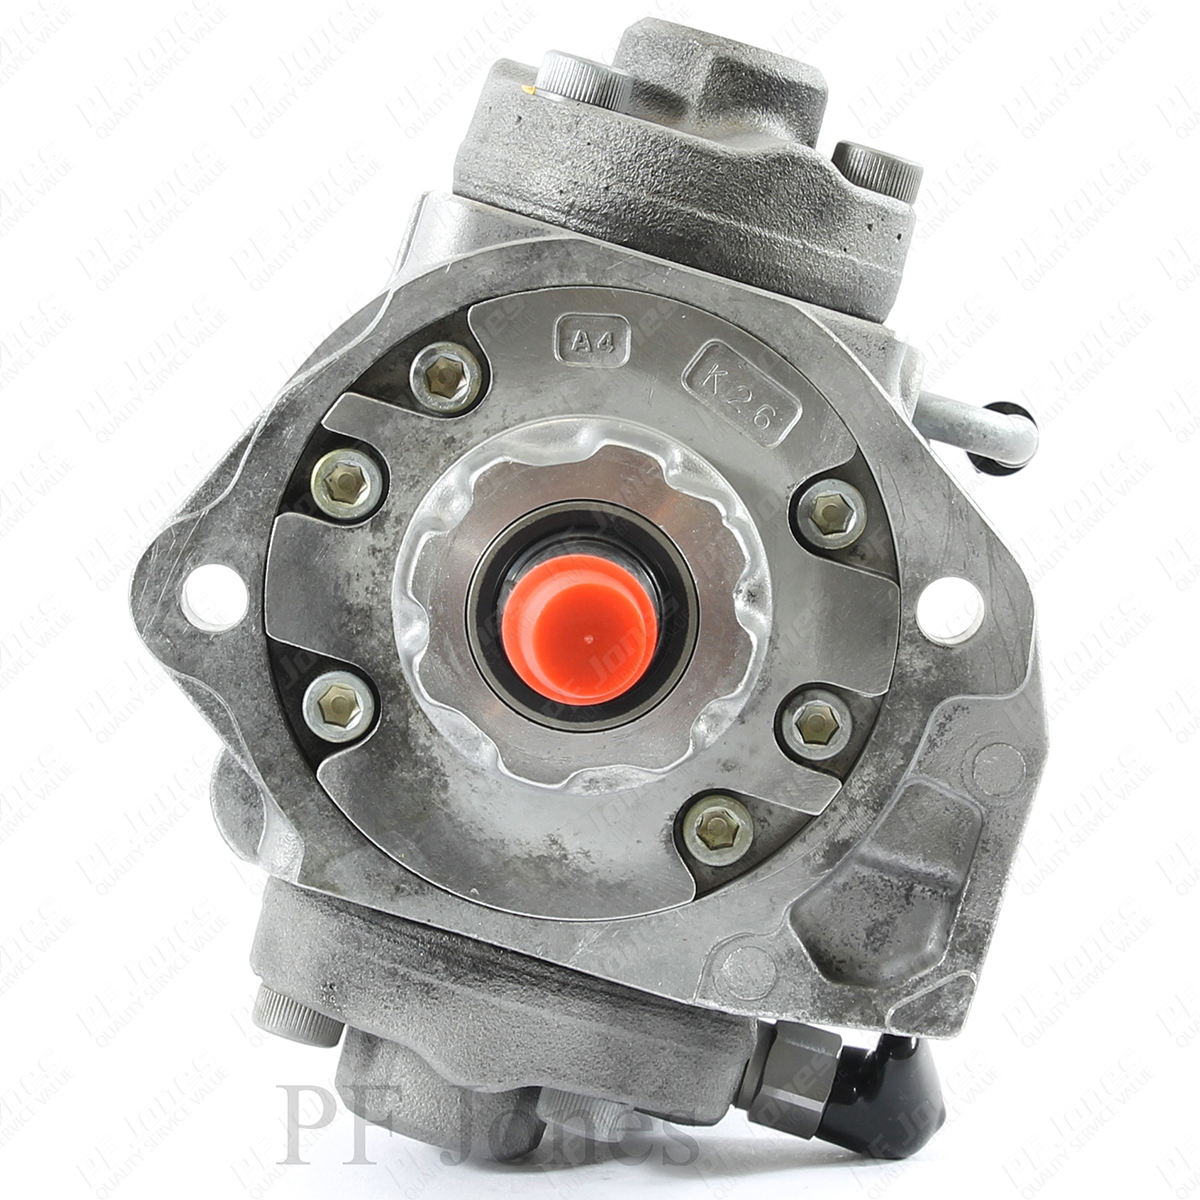 Toyota Corolla 2.0 2003 Onwards Reconditioned Denso Diesel Fuel Pump 294000-0850